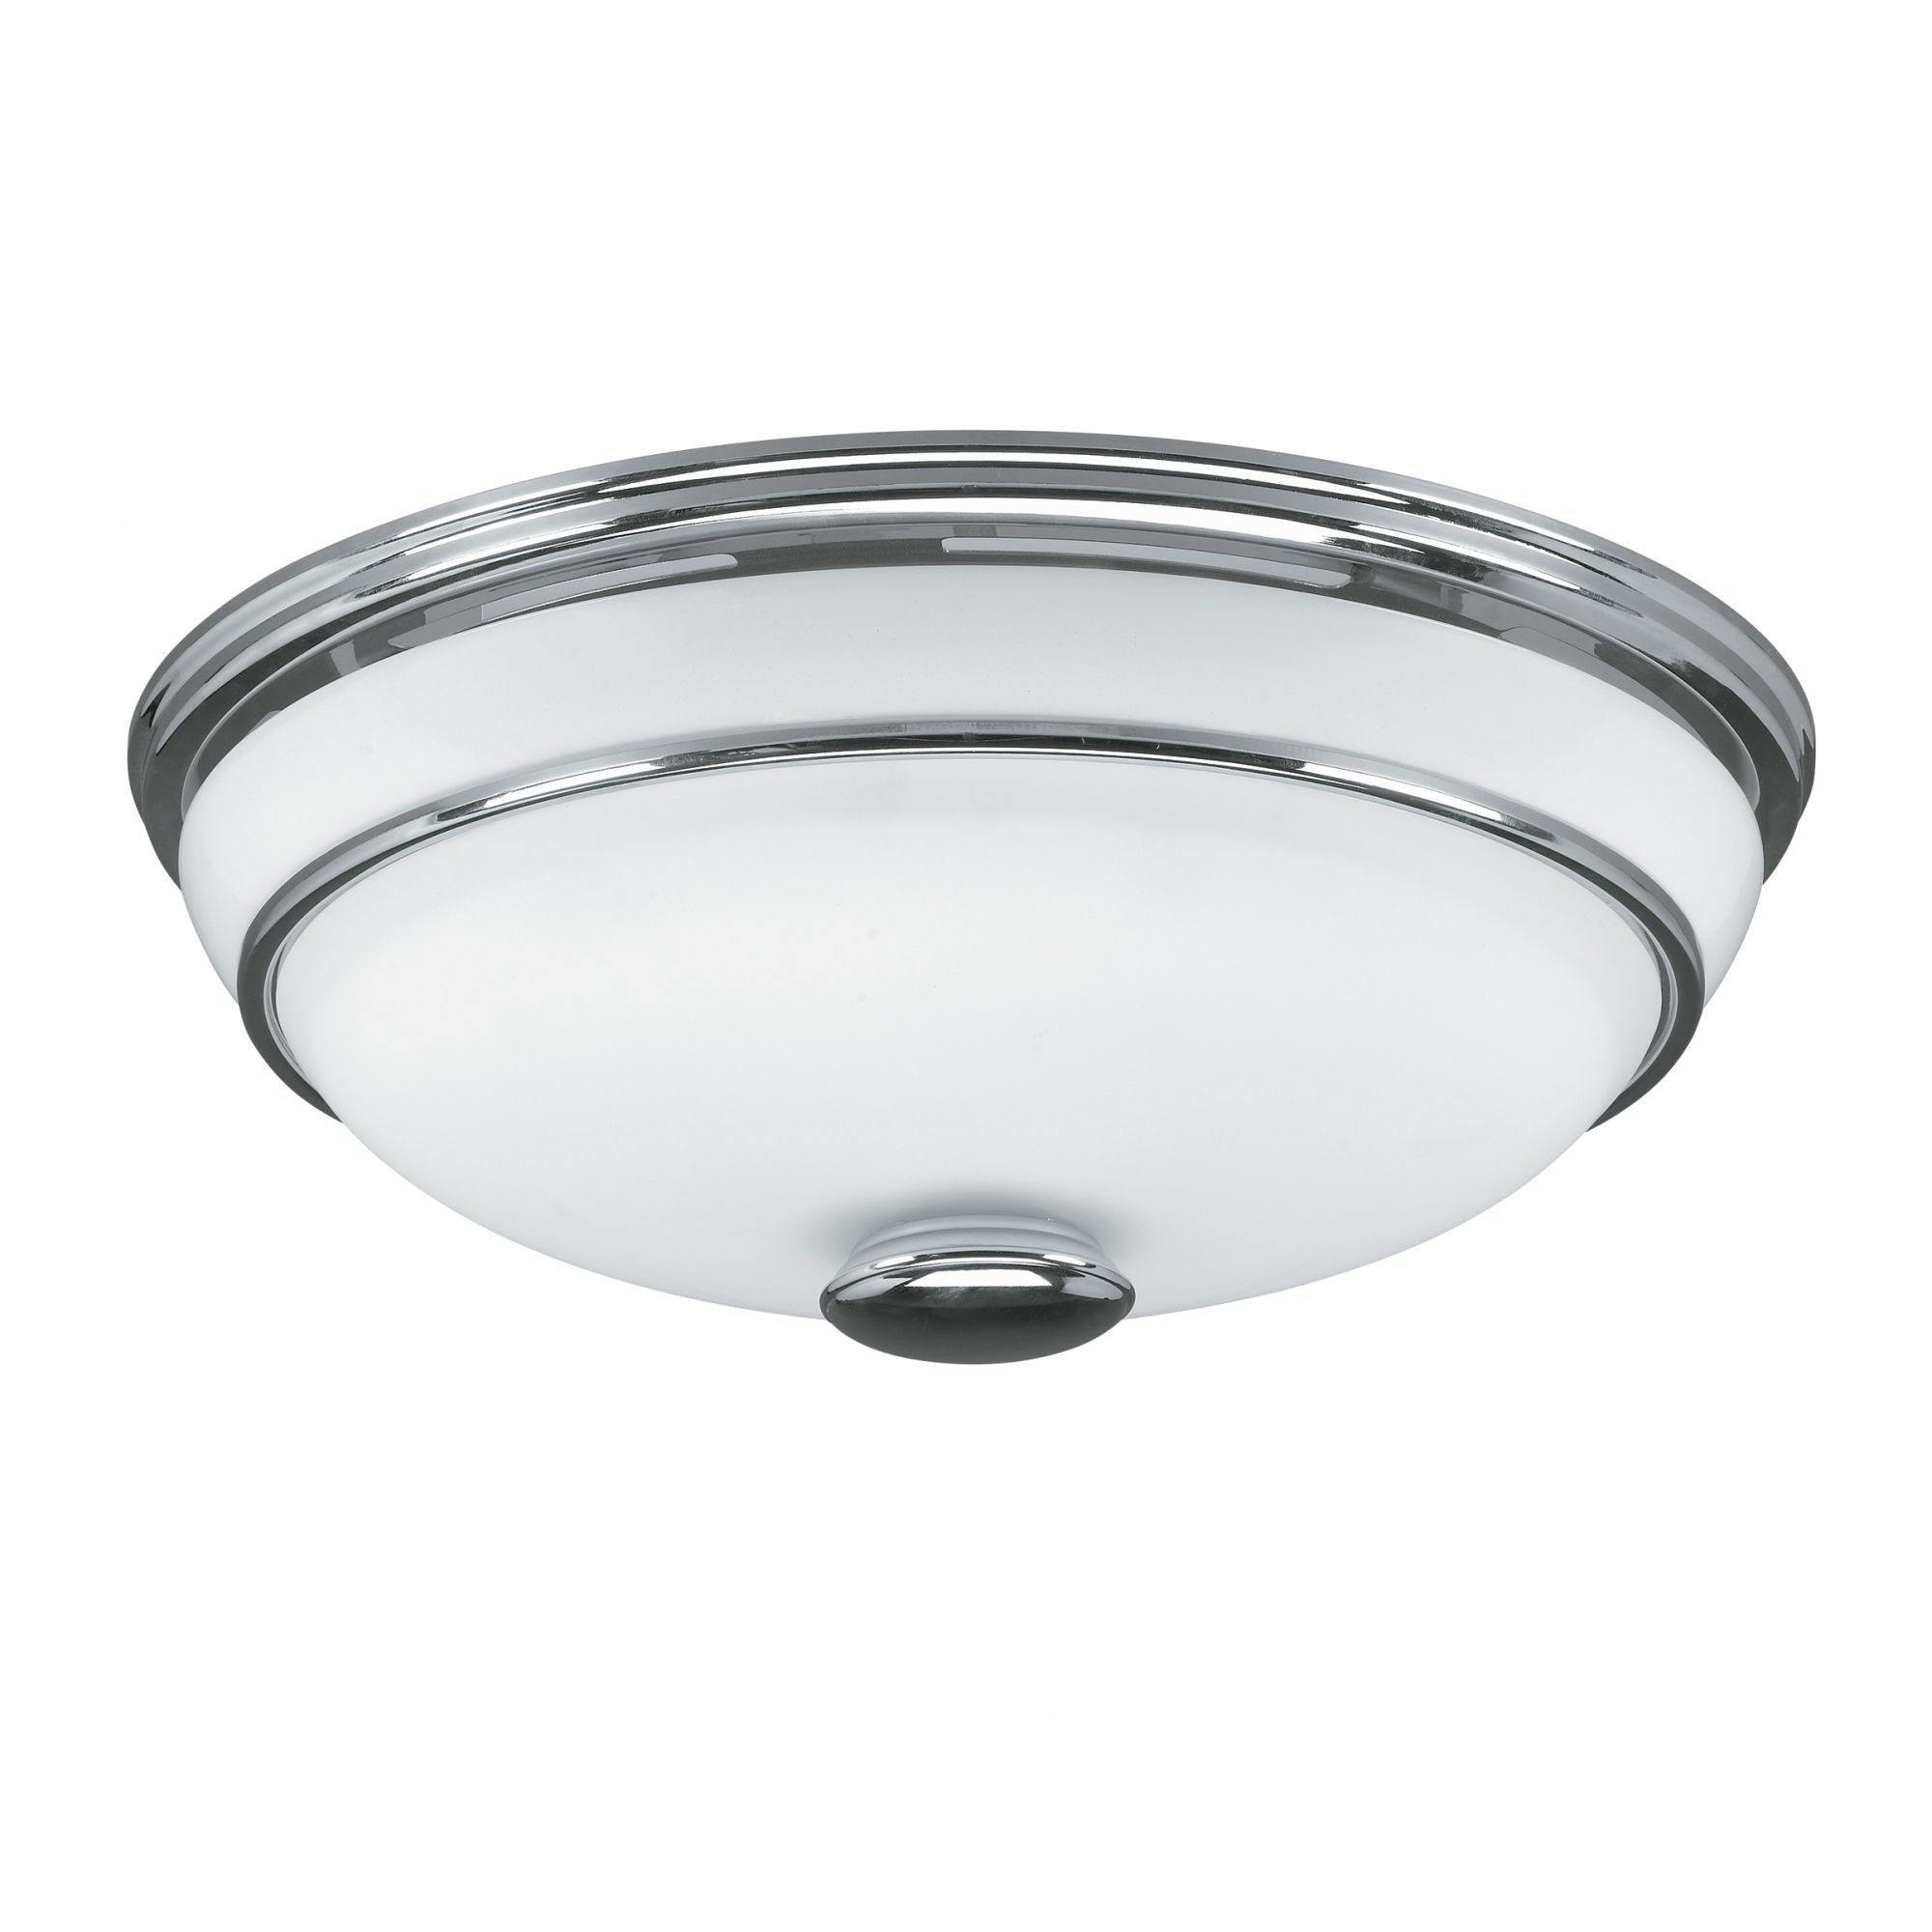 Hunter Fans Victorian Bathroom Exhaust Fan in Chrome